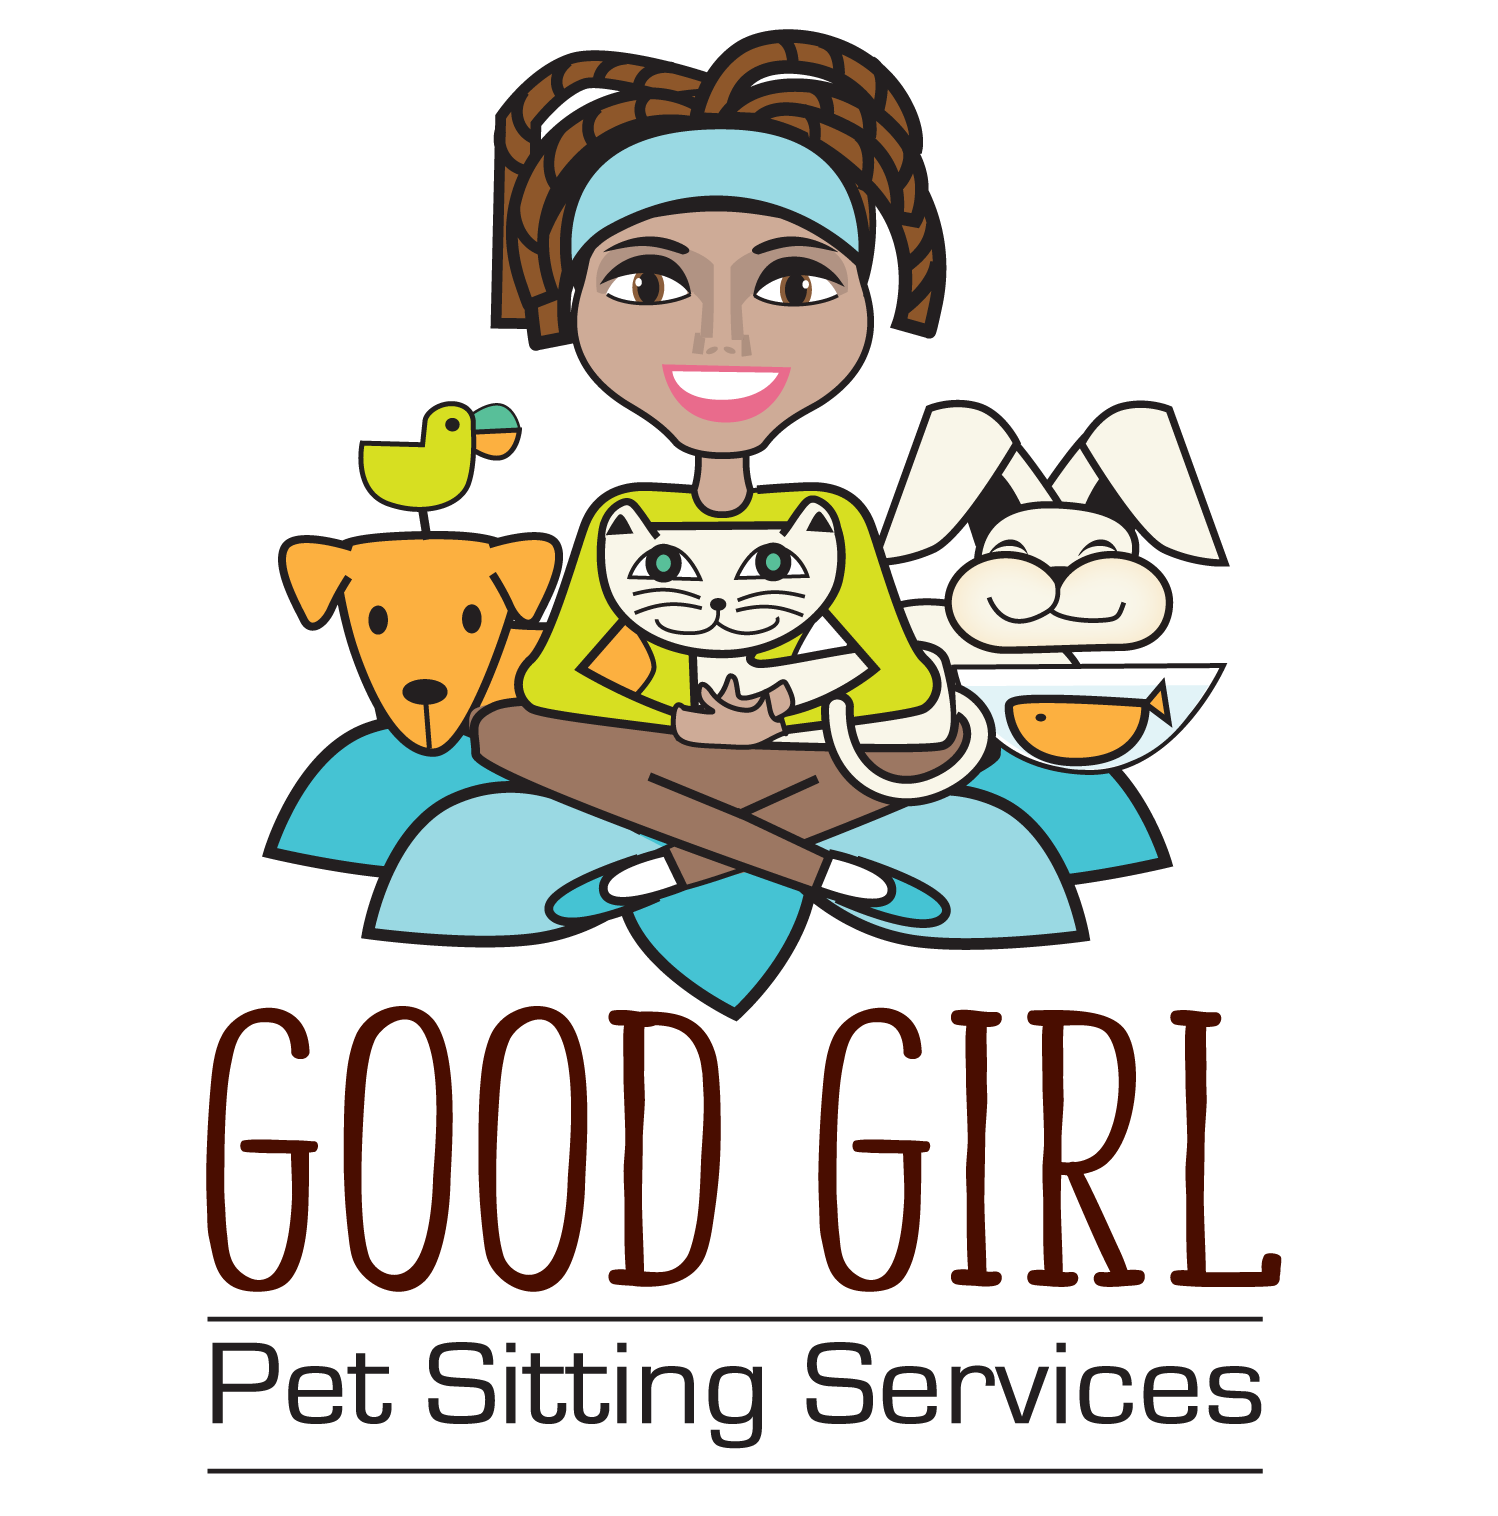 Good Girl Pet Sitting Services